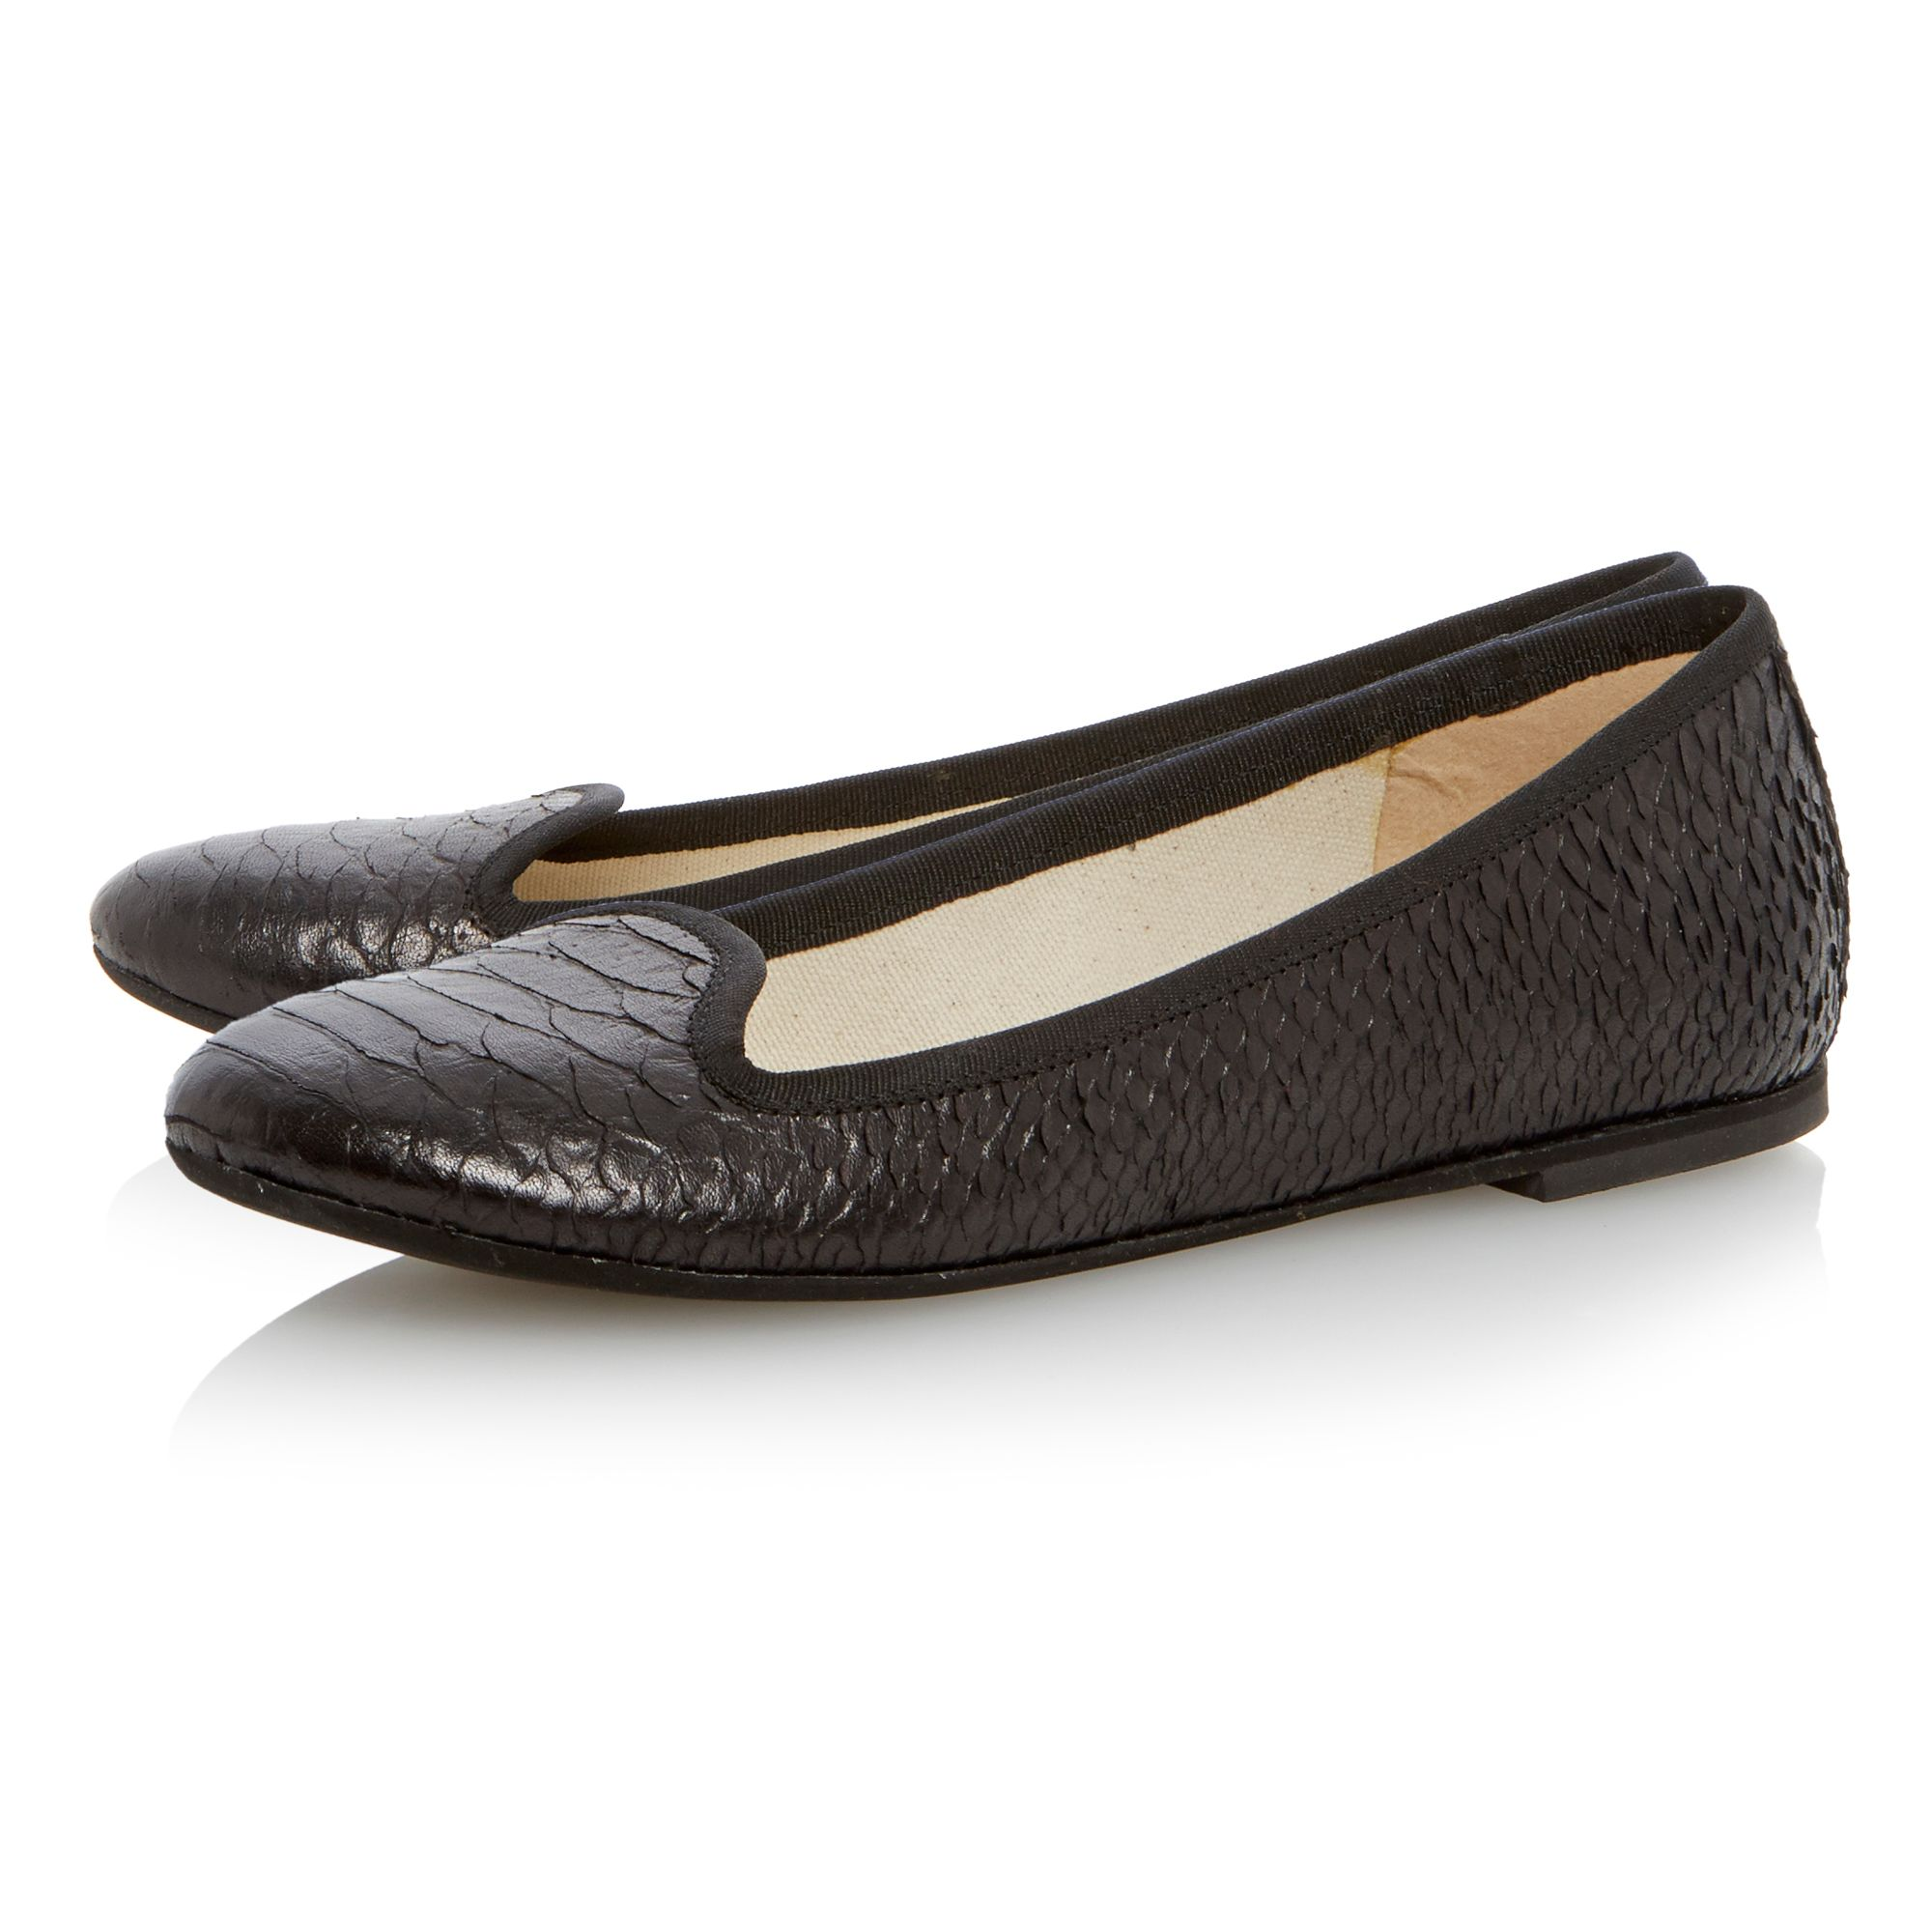 Lariano slipper cut loafer shoes